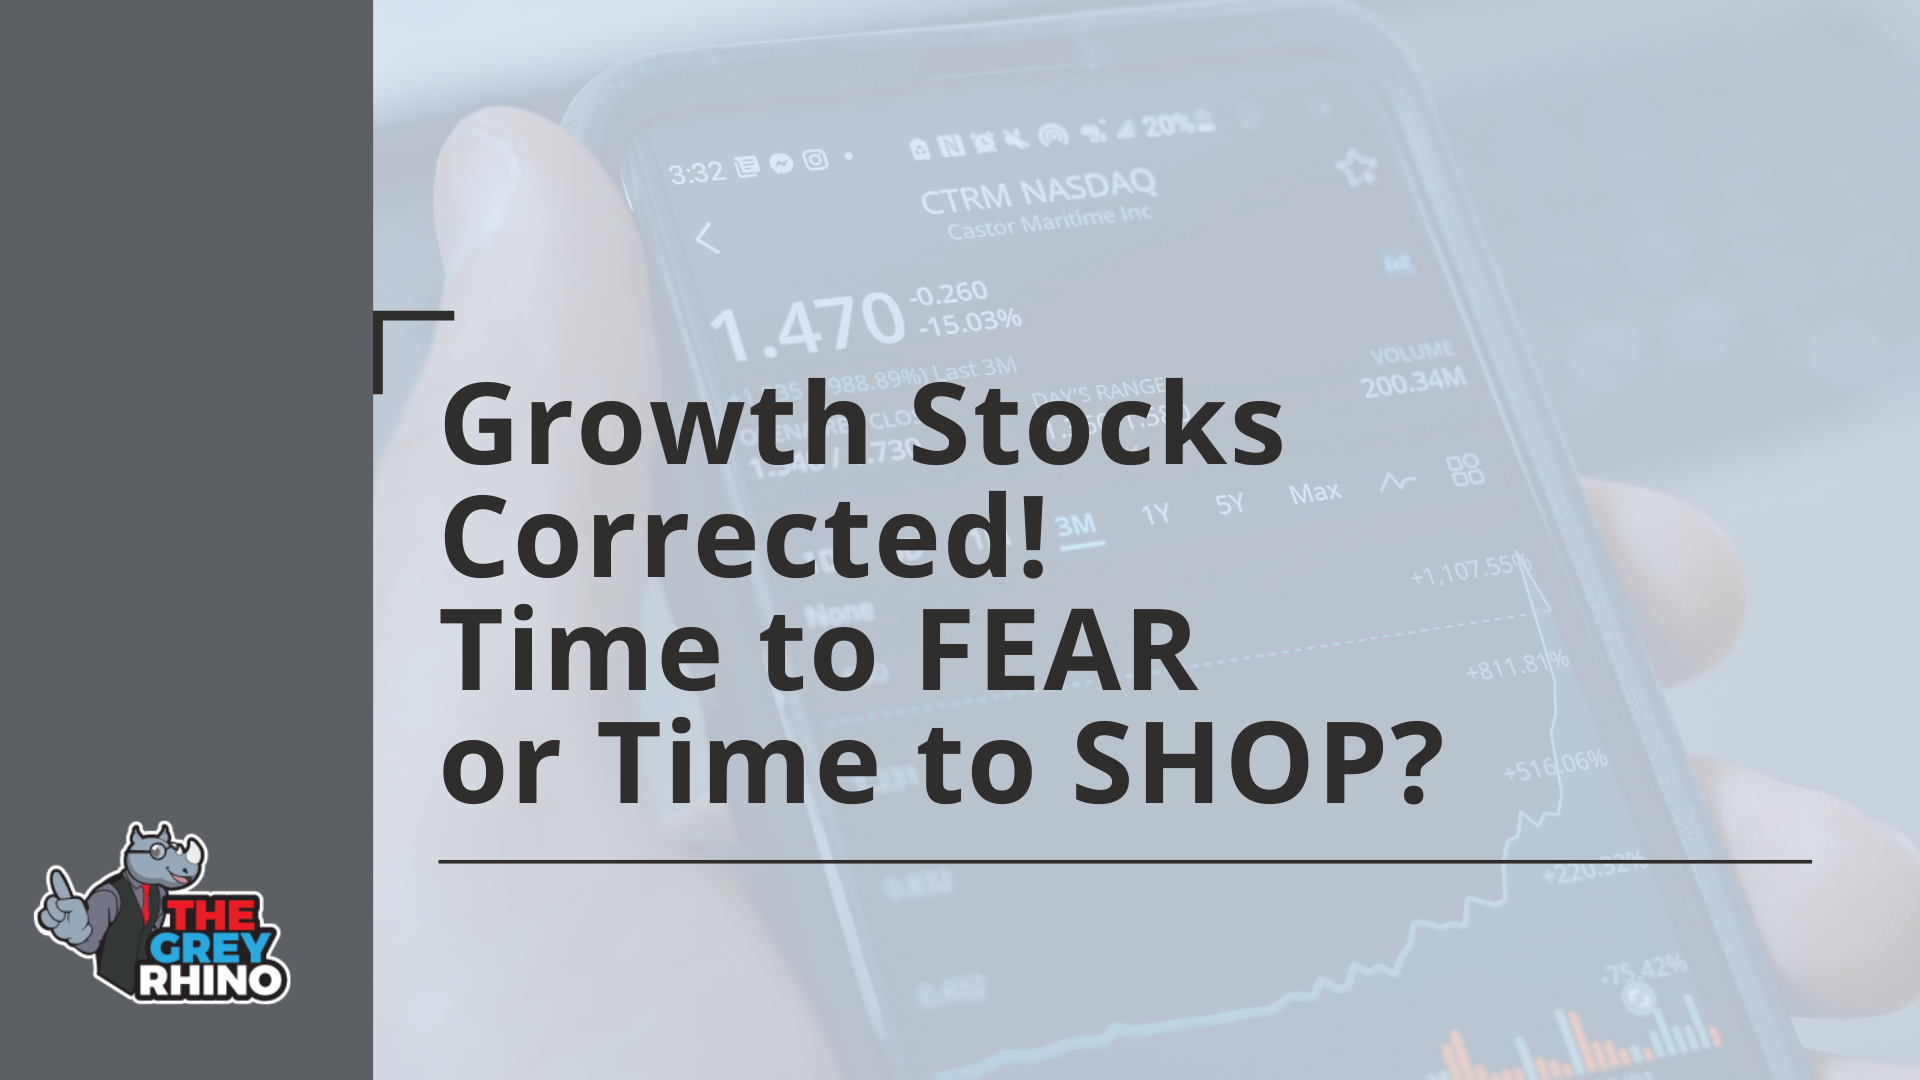 Growth Stocks Corrected! Time to FEAR or Time to SHOP?